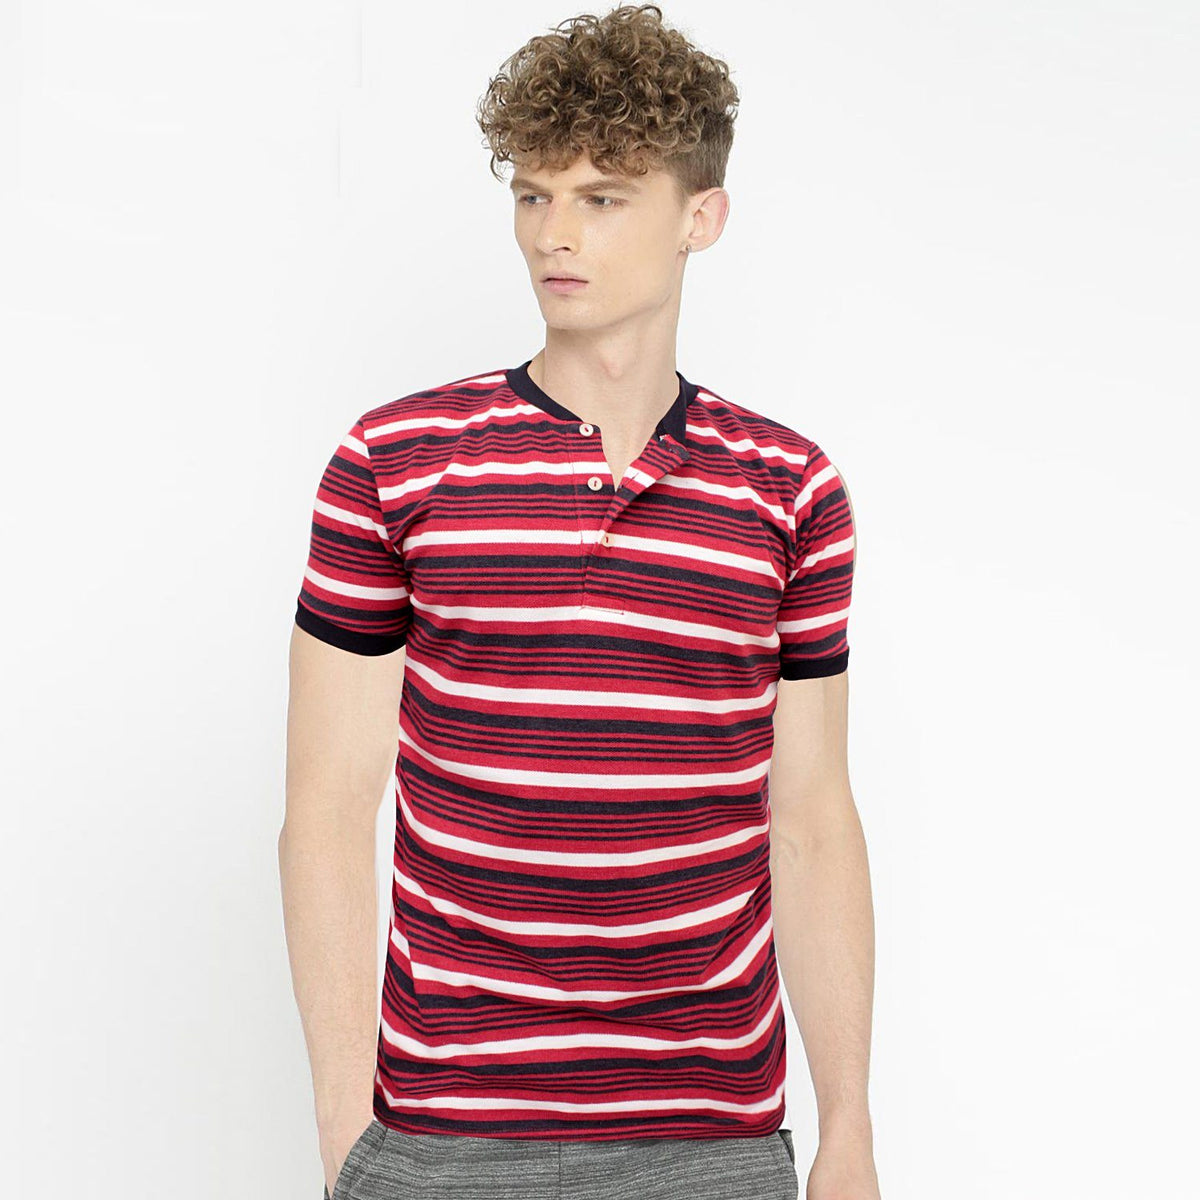 ZR-mandarin collar 'slim fit' pique striper polo (846)